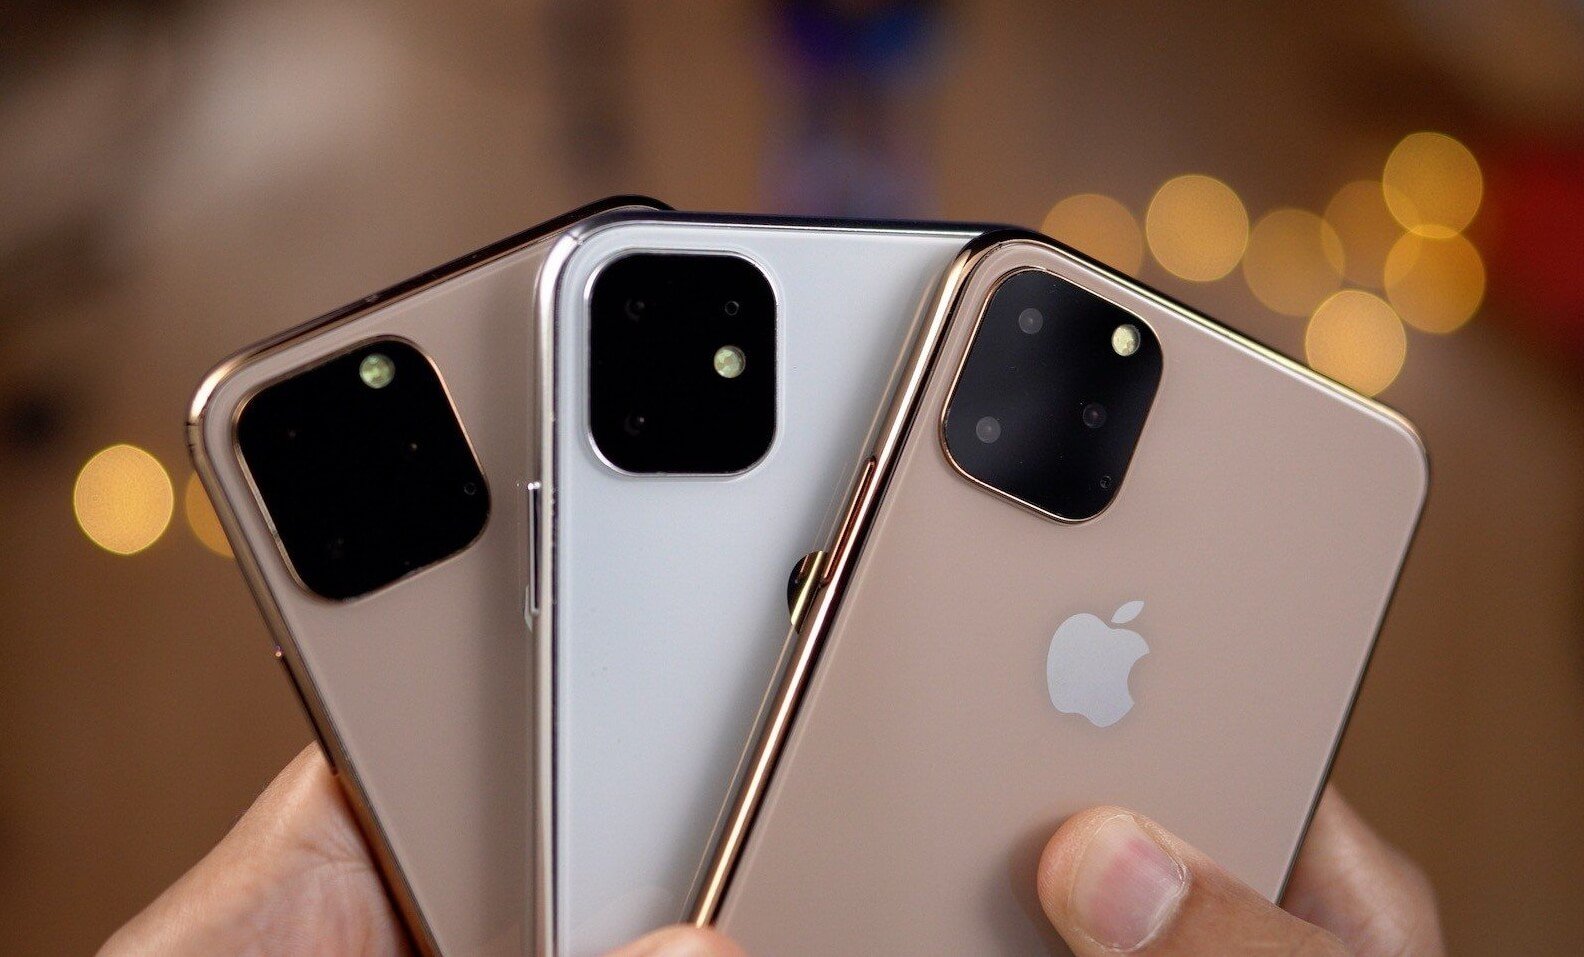 Keynote Apple du 10 septembre 2019 : les nouveautés attendues (iPhone 11, Apple Watch Series 5, iPad Pro)